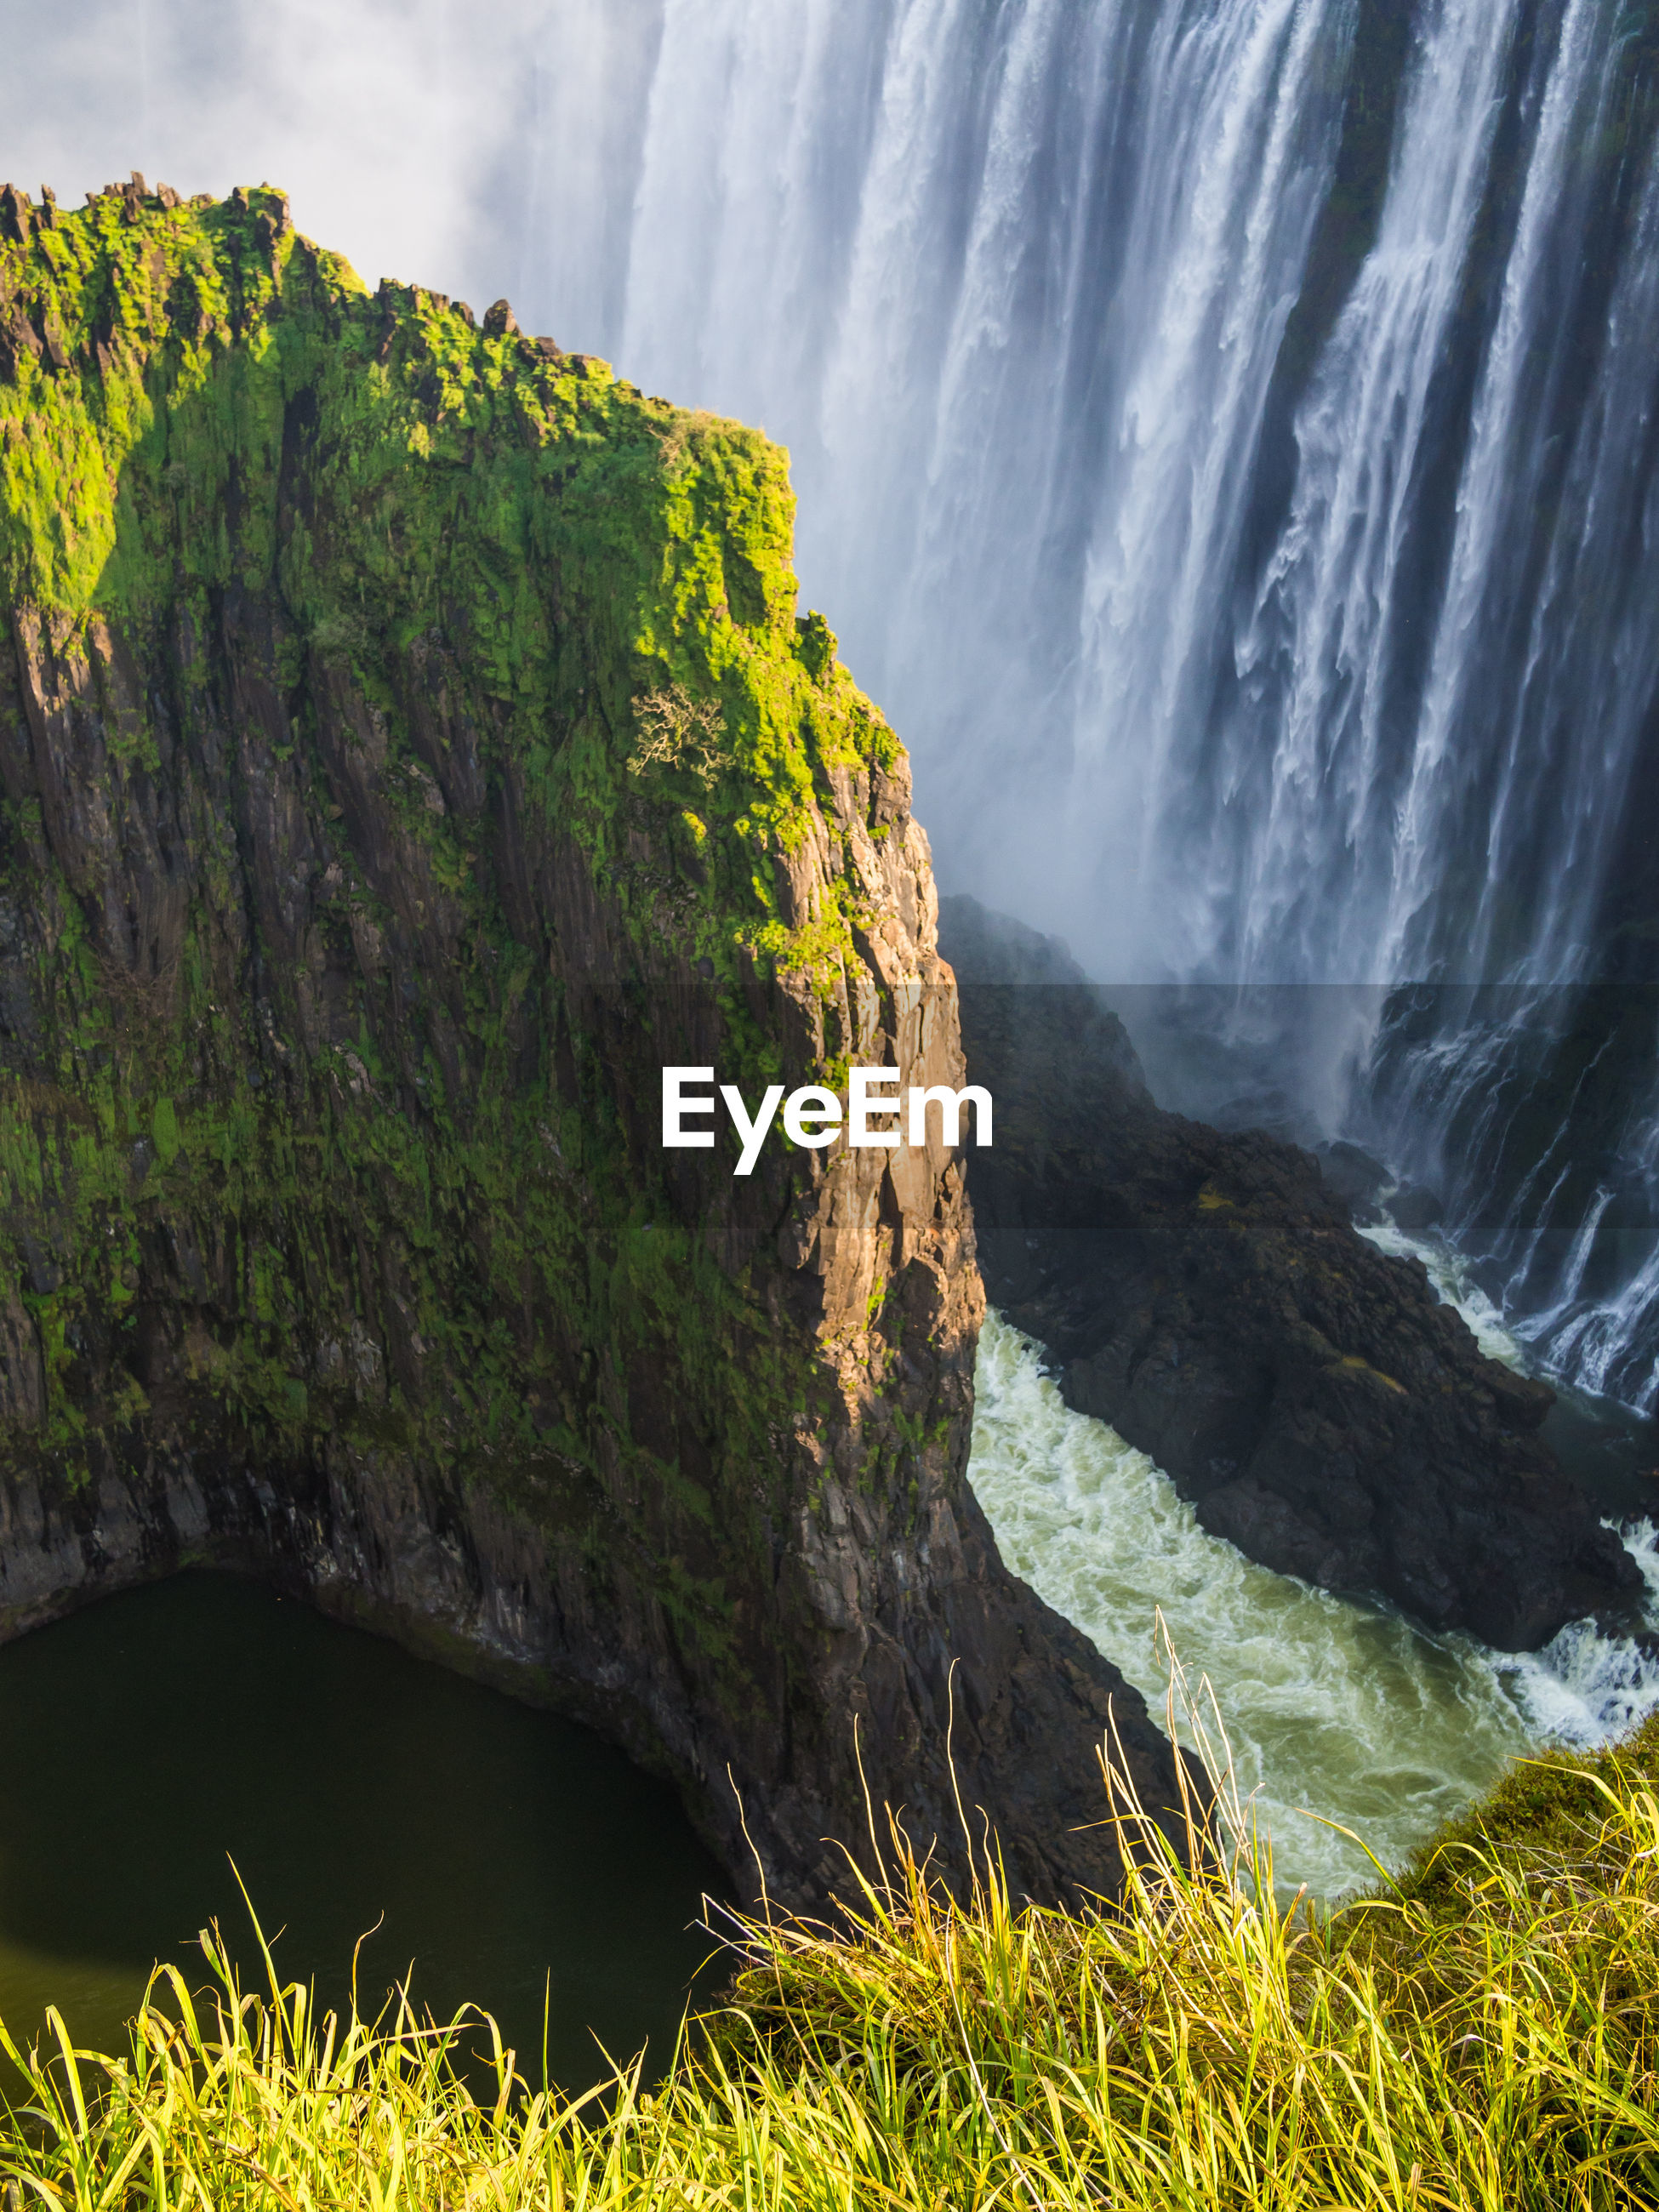 Scenic view of victoria falls waterfall with overgrown cliff and green grass, zambia